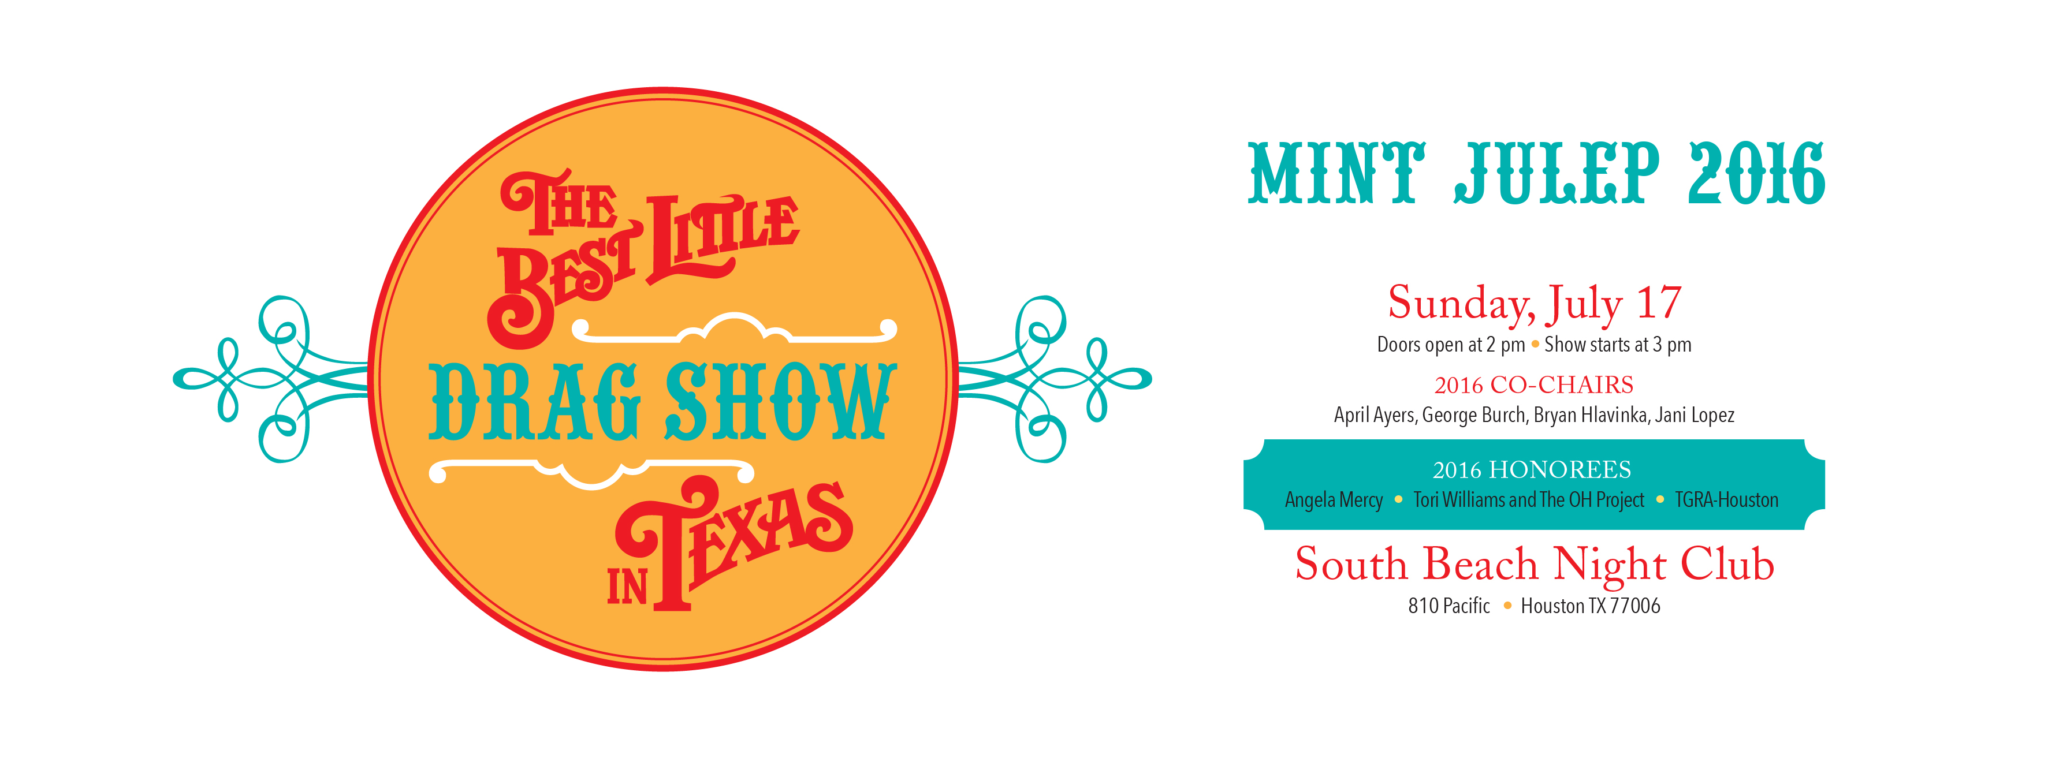 Mint Julep FB Event Cover